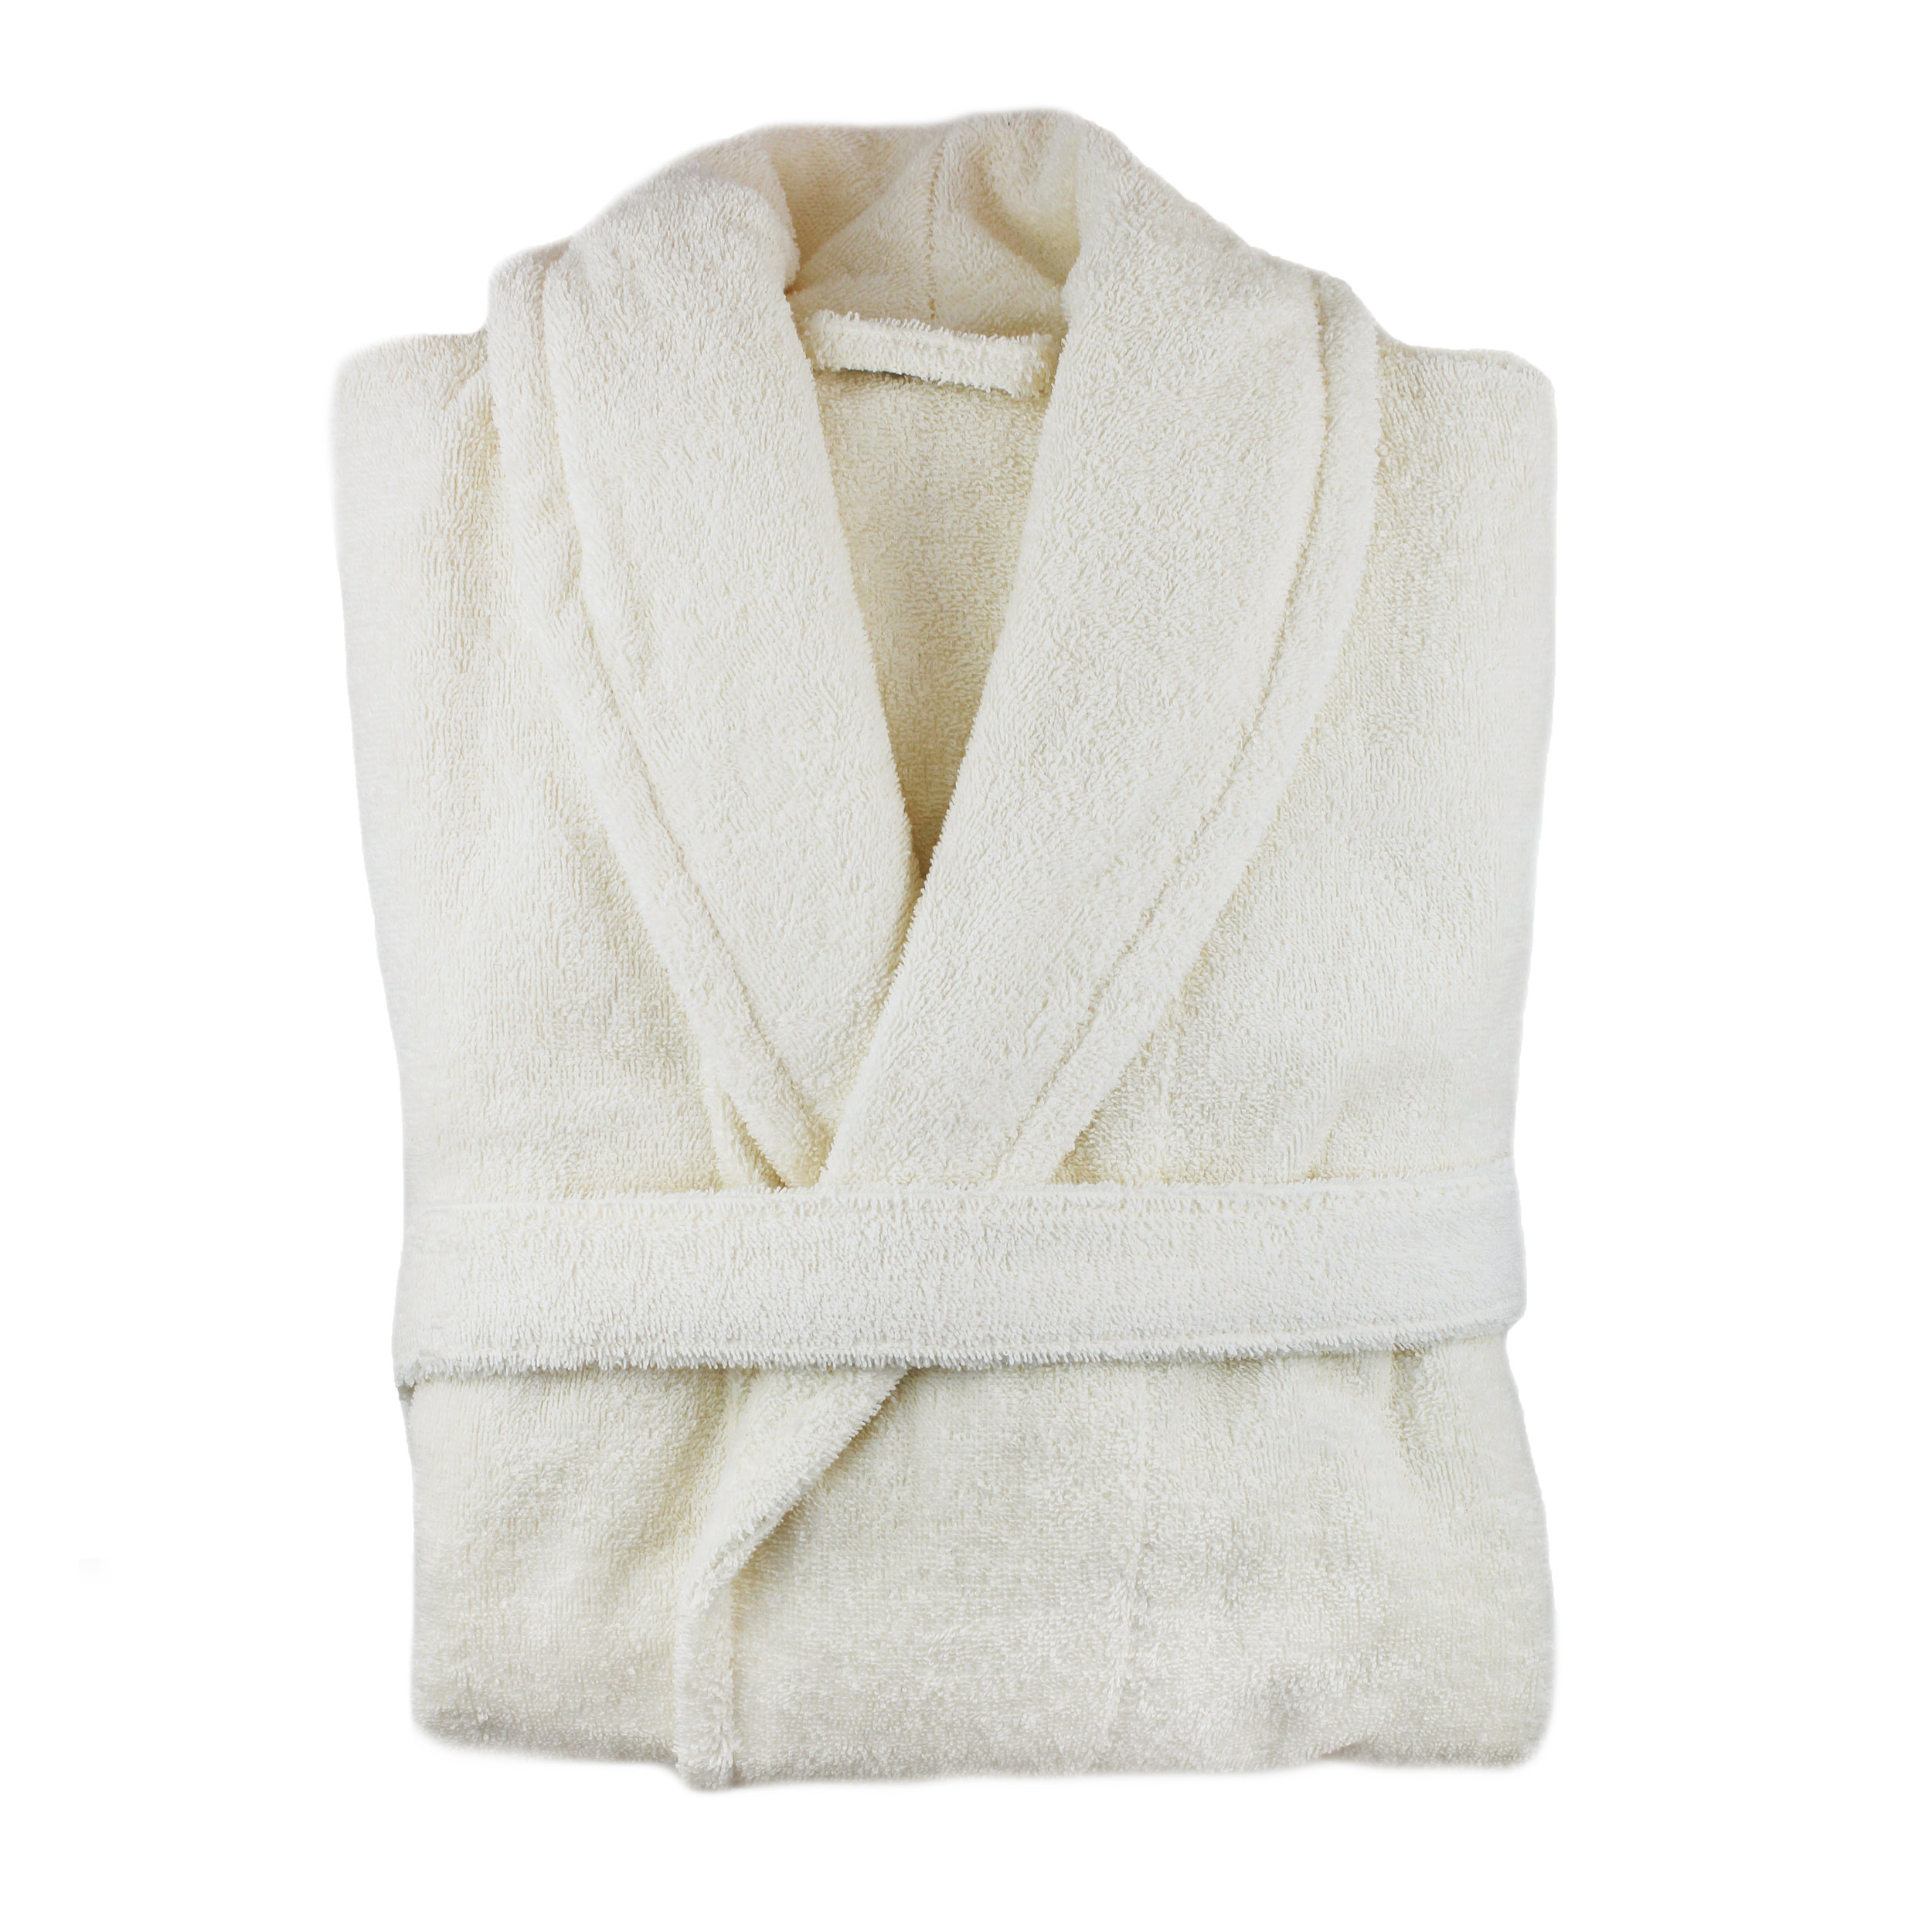 192939 100% Turkish Cotton Bath Robe_ ivory.jpg